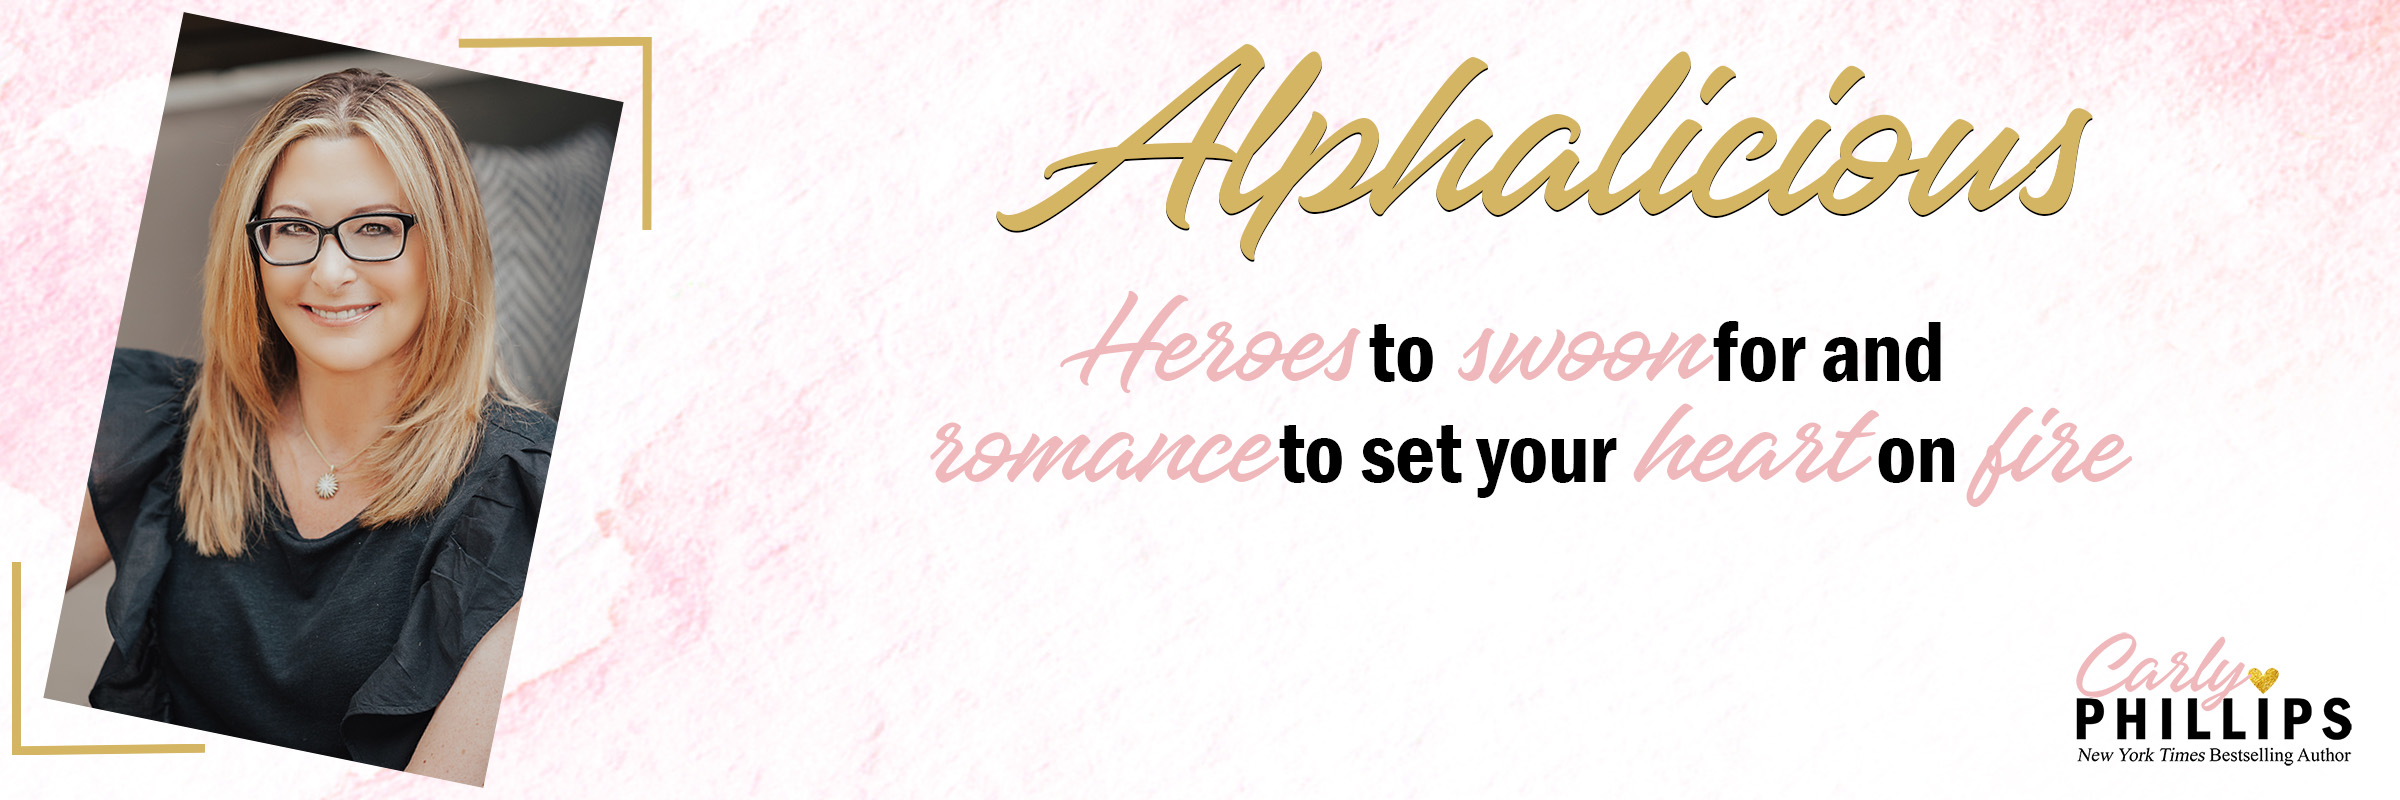 Alphalicious Books by Carly Phillips